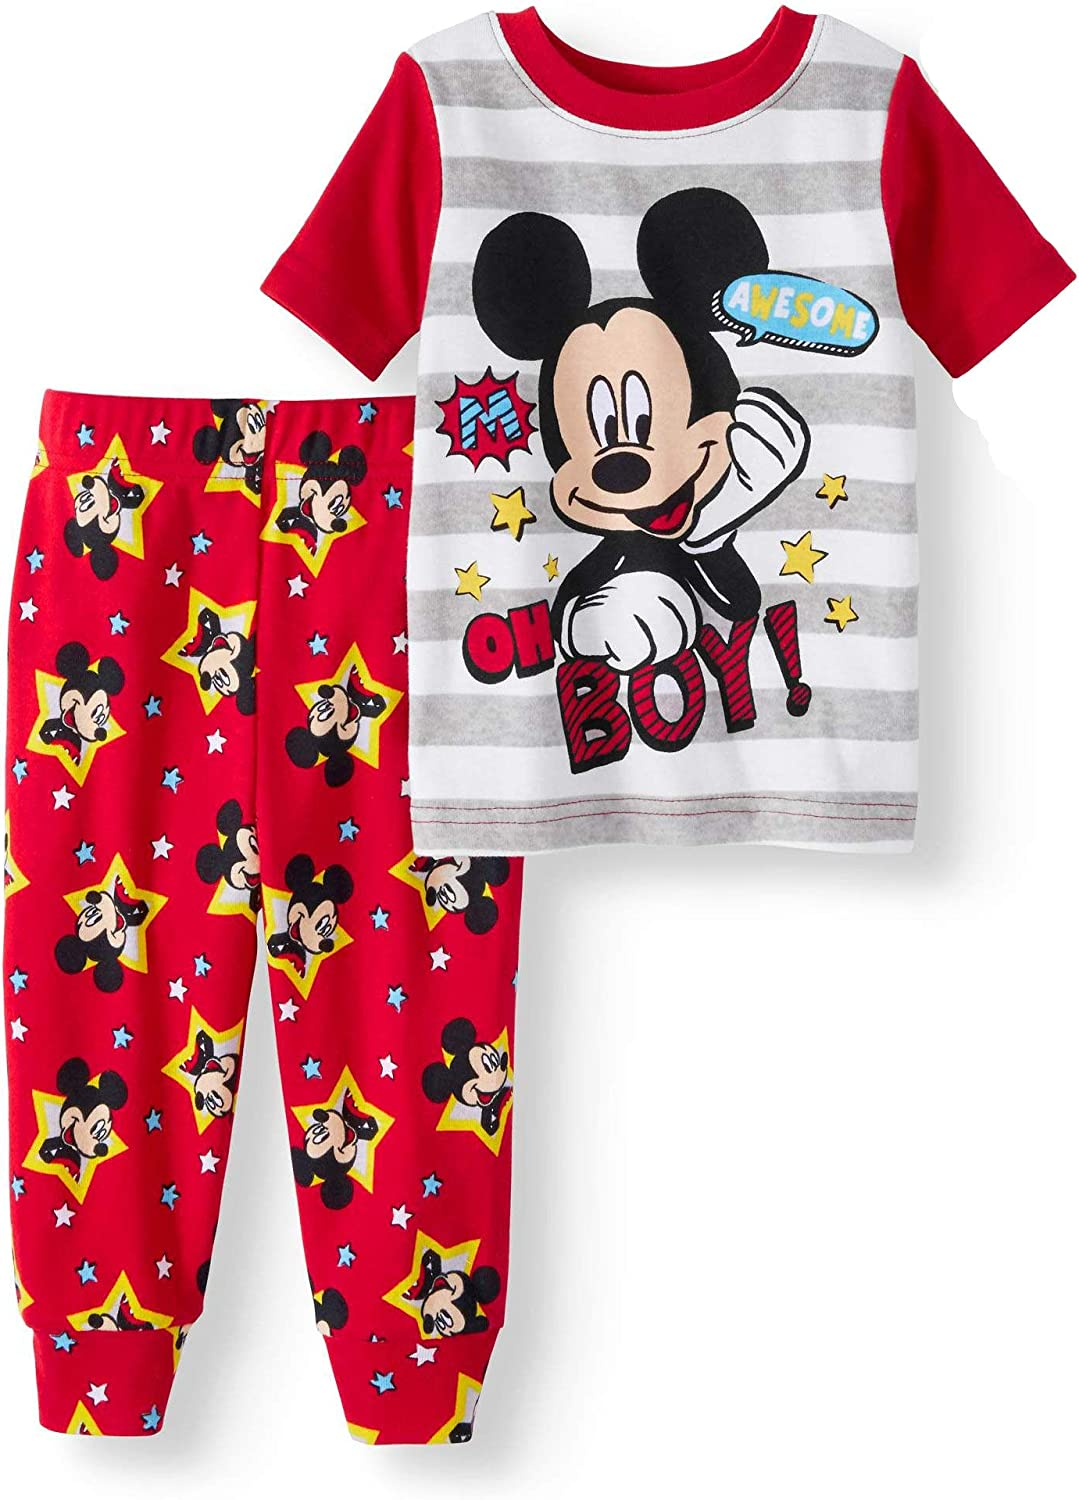 2pc Kids Baby Boys Mickey Mouse Short Sleeve T-shirt+Casual Pants Clothes Sets